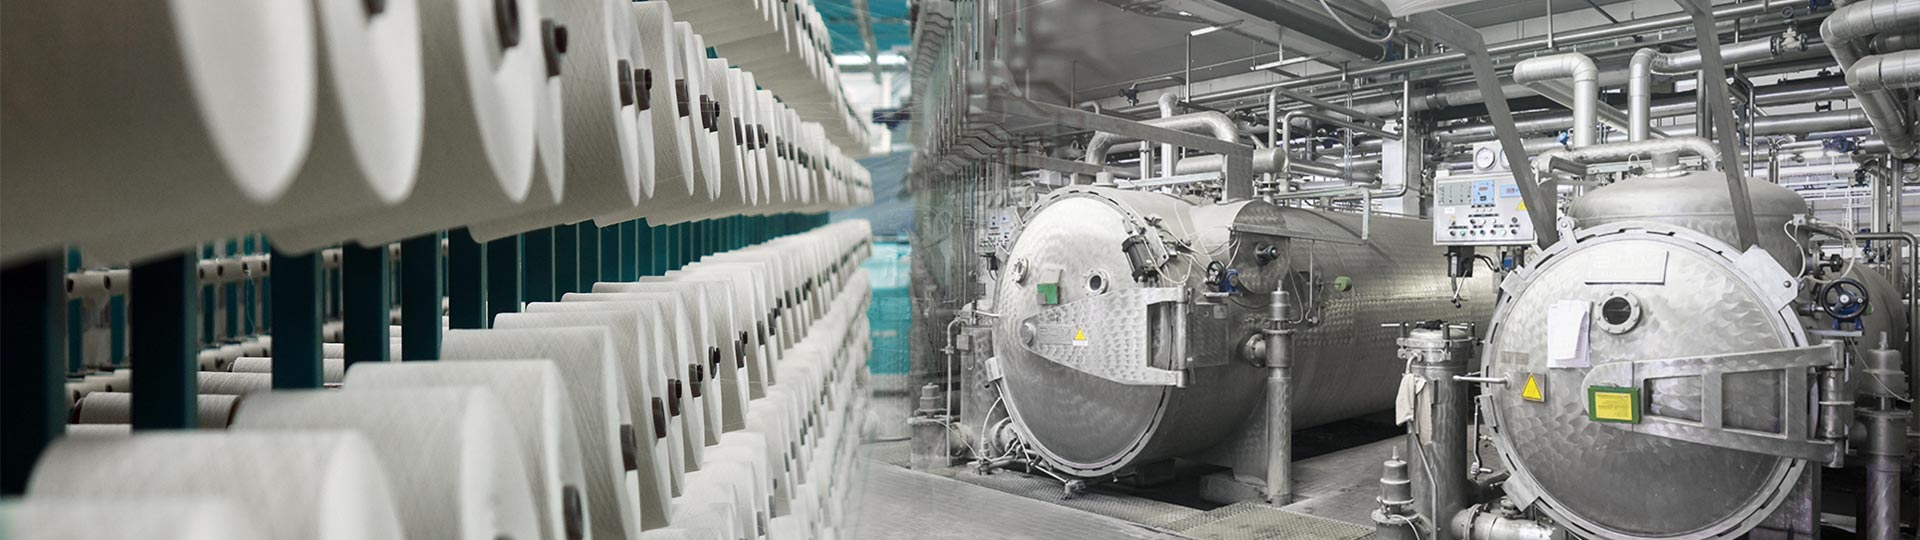 Chemical And Engineering News >> Textile industry | Schubert & Salzer Control Systems